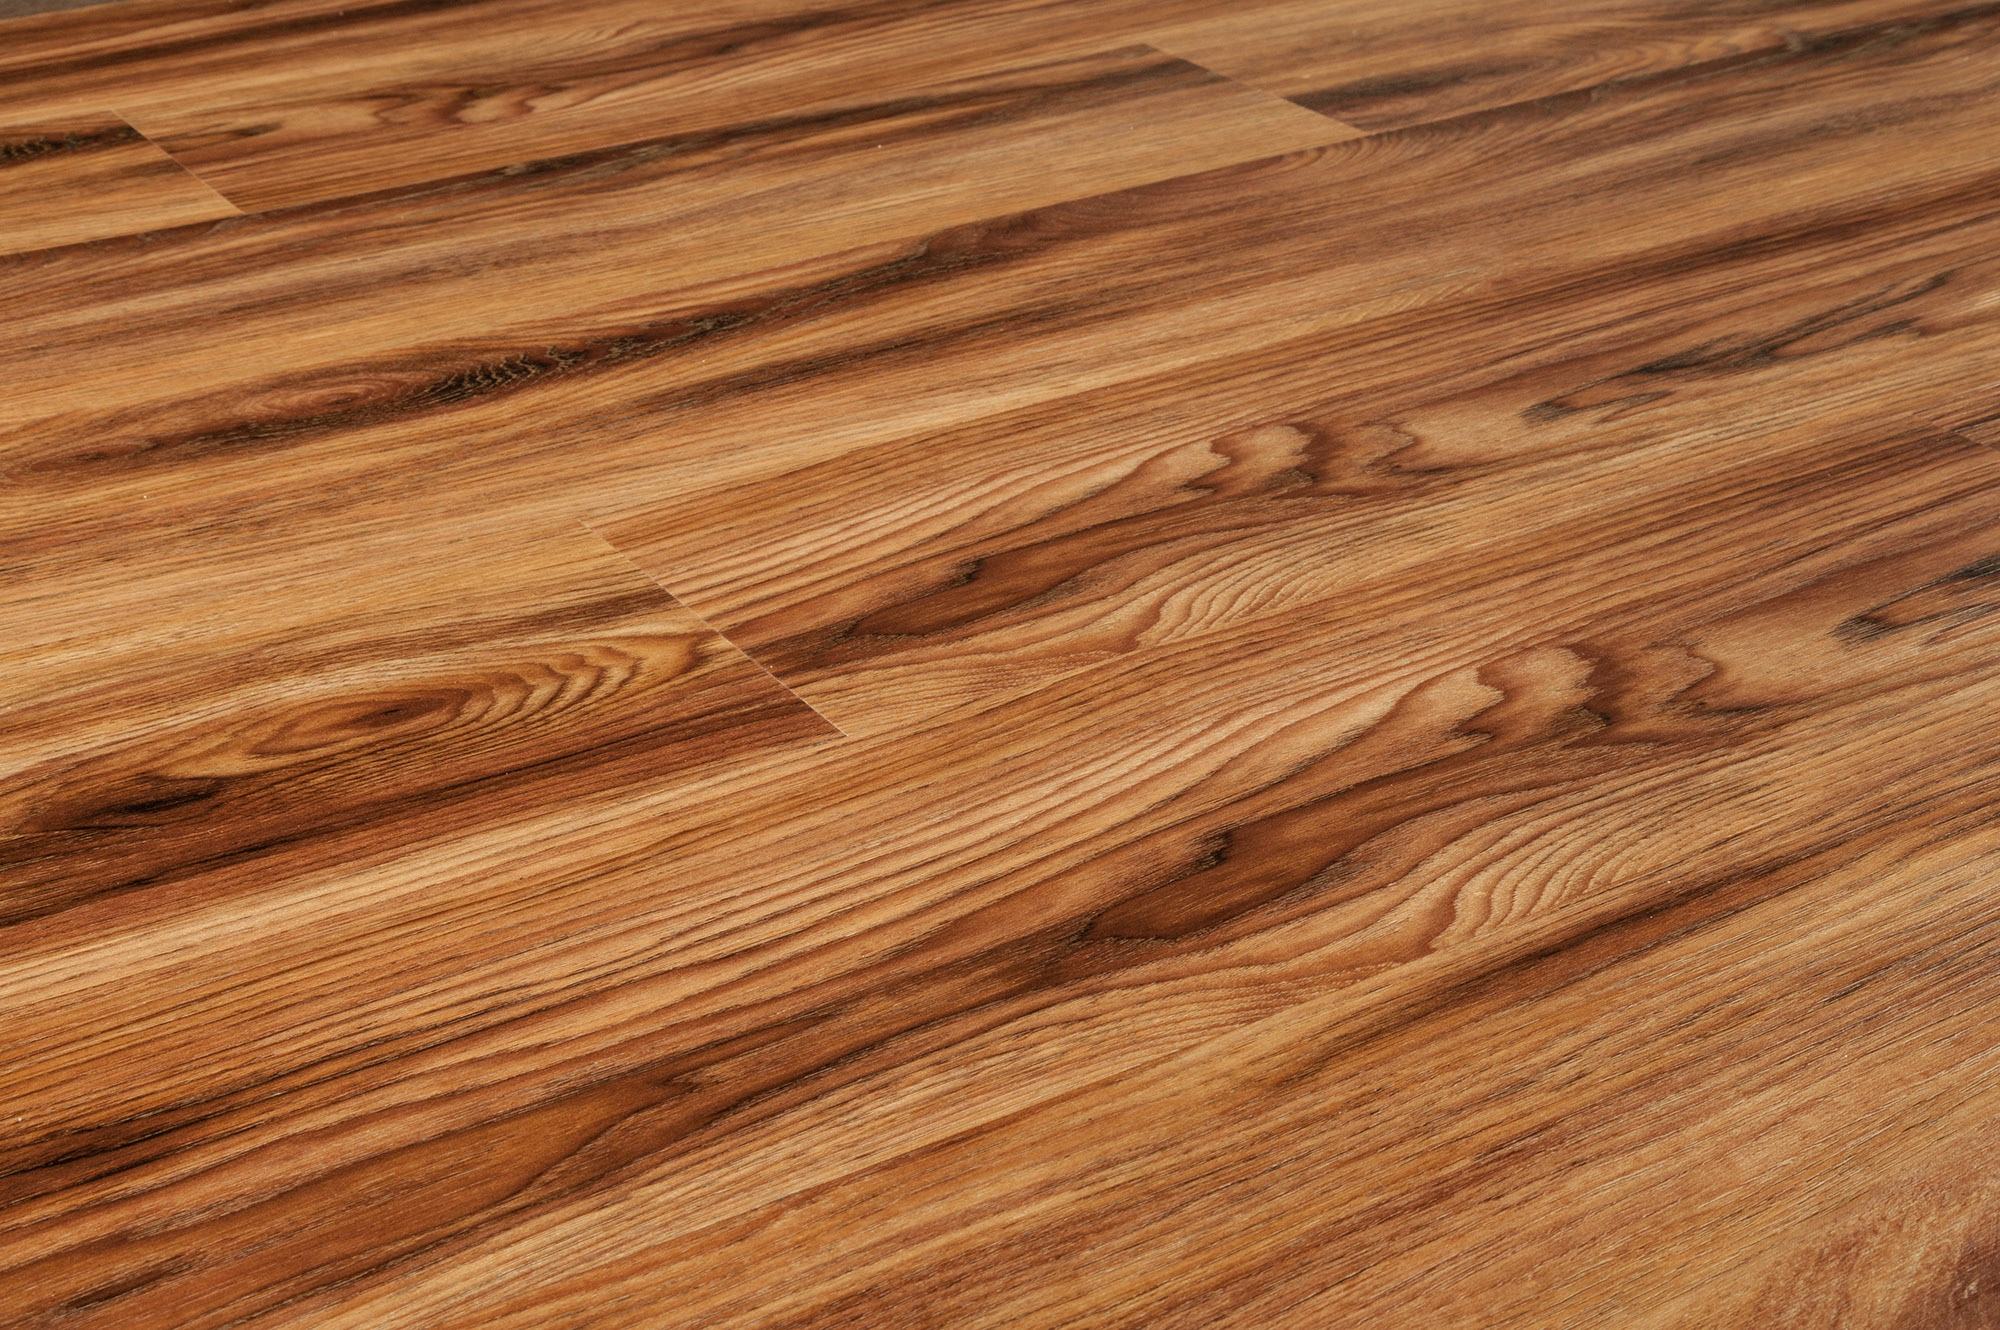 hdf strand floors bamboo carbonized if lock color picasso click woven flooring core with patina